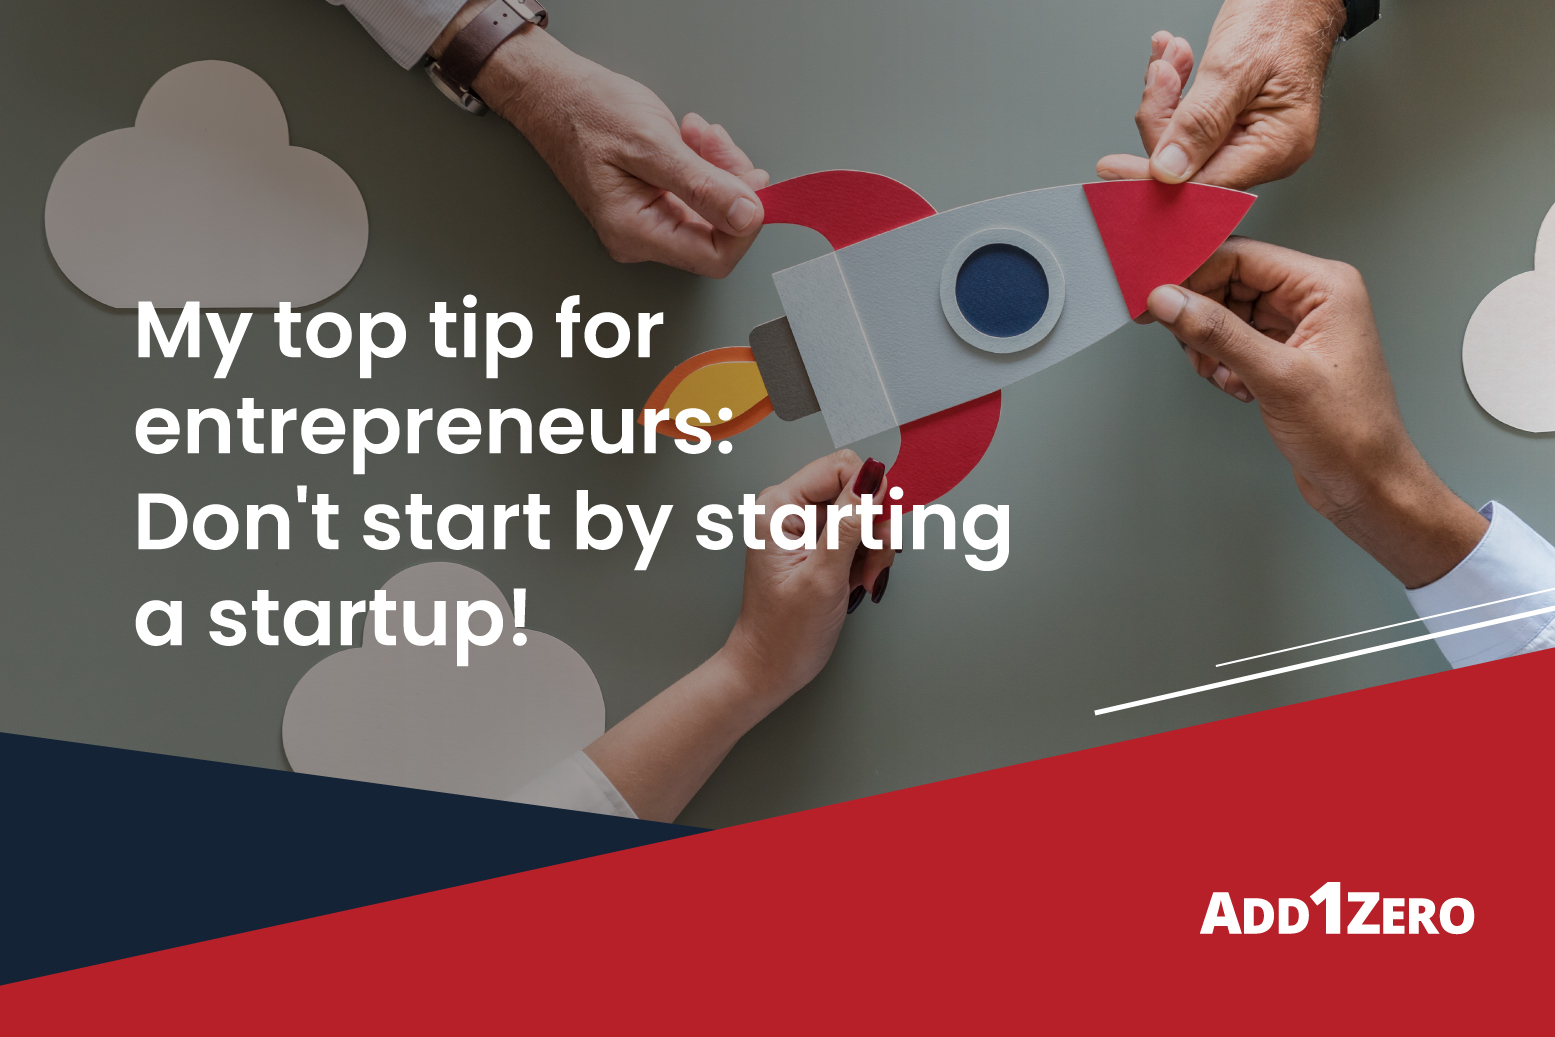 My top tip for entrepreneurs: Don't start by starting a startup!